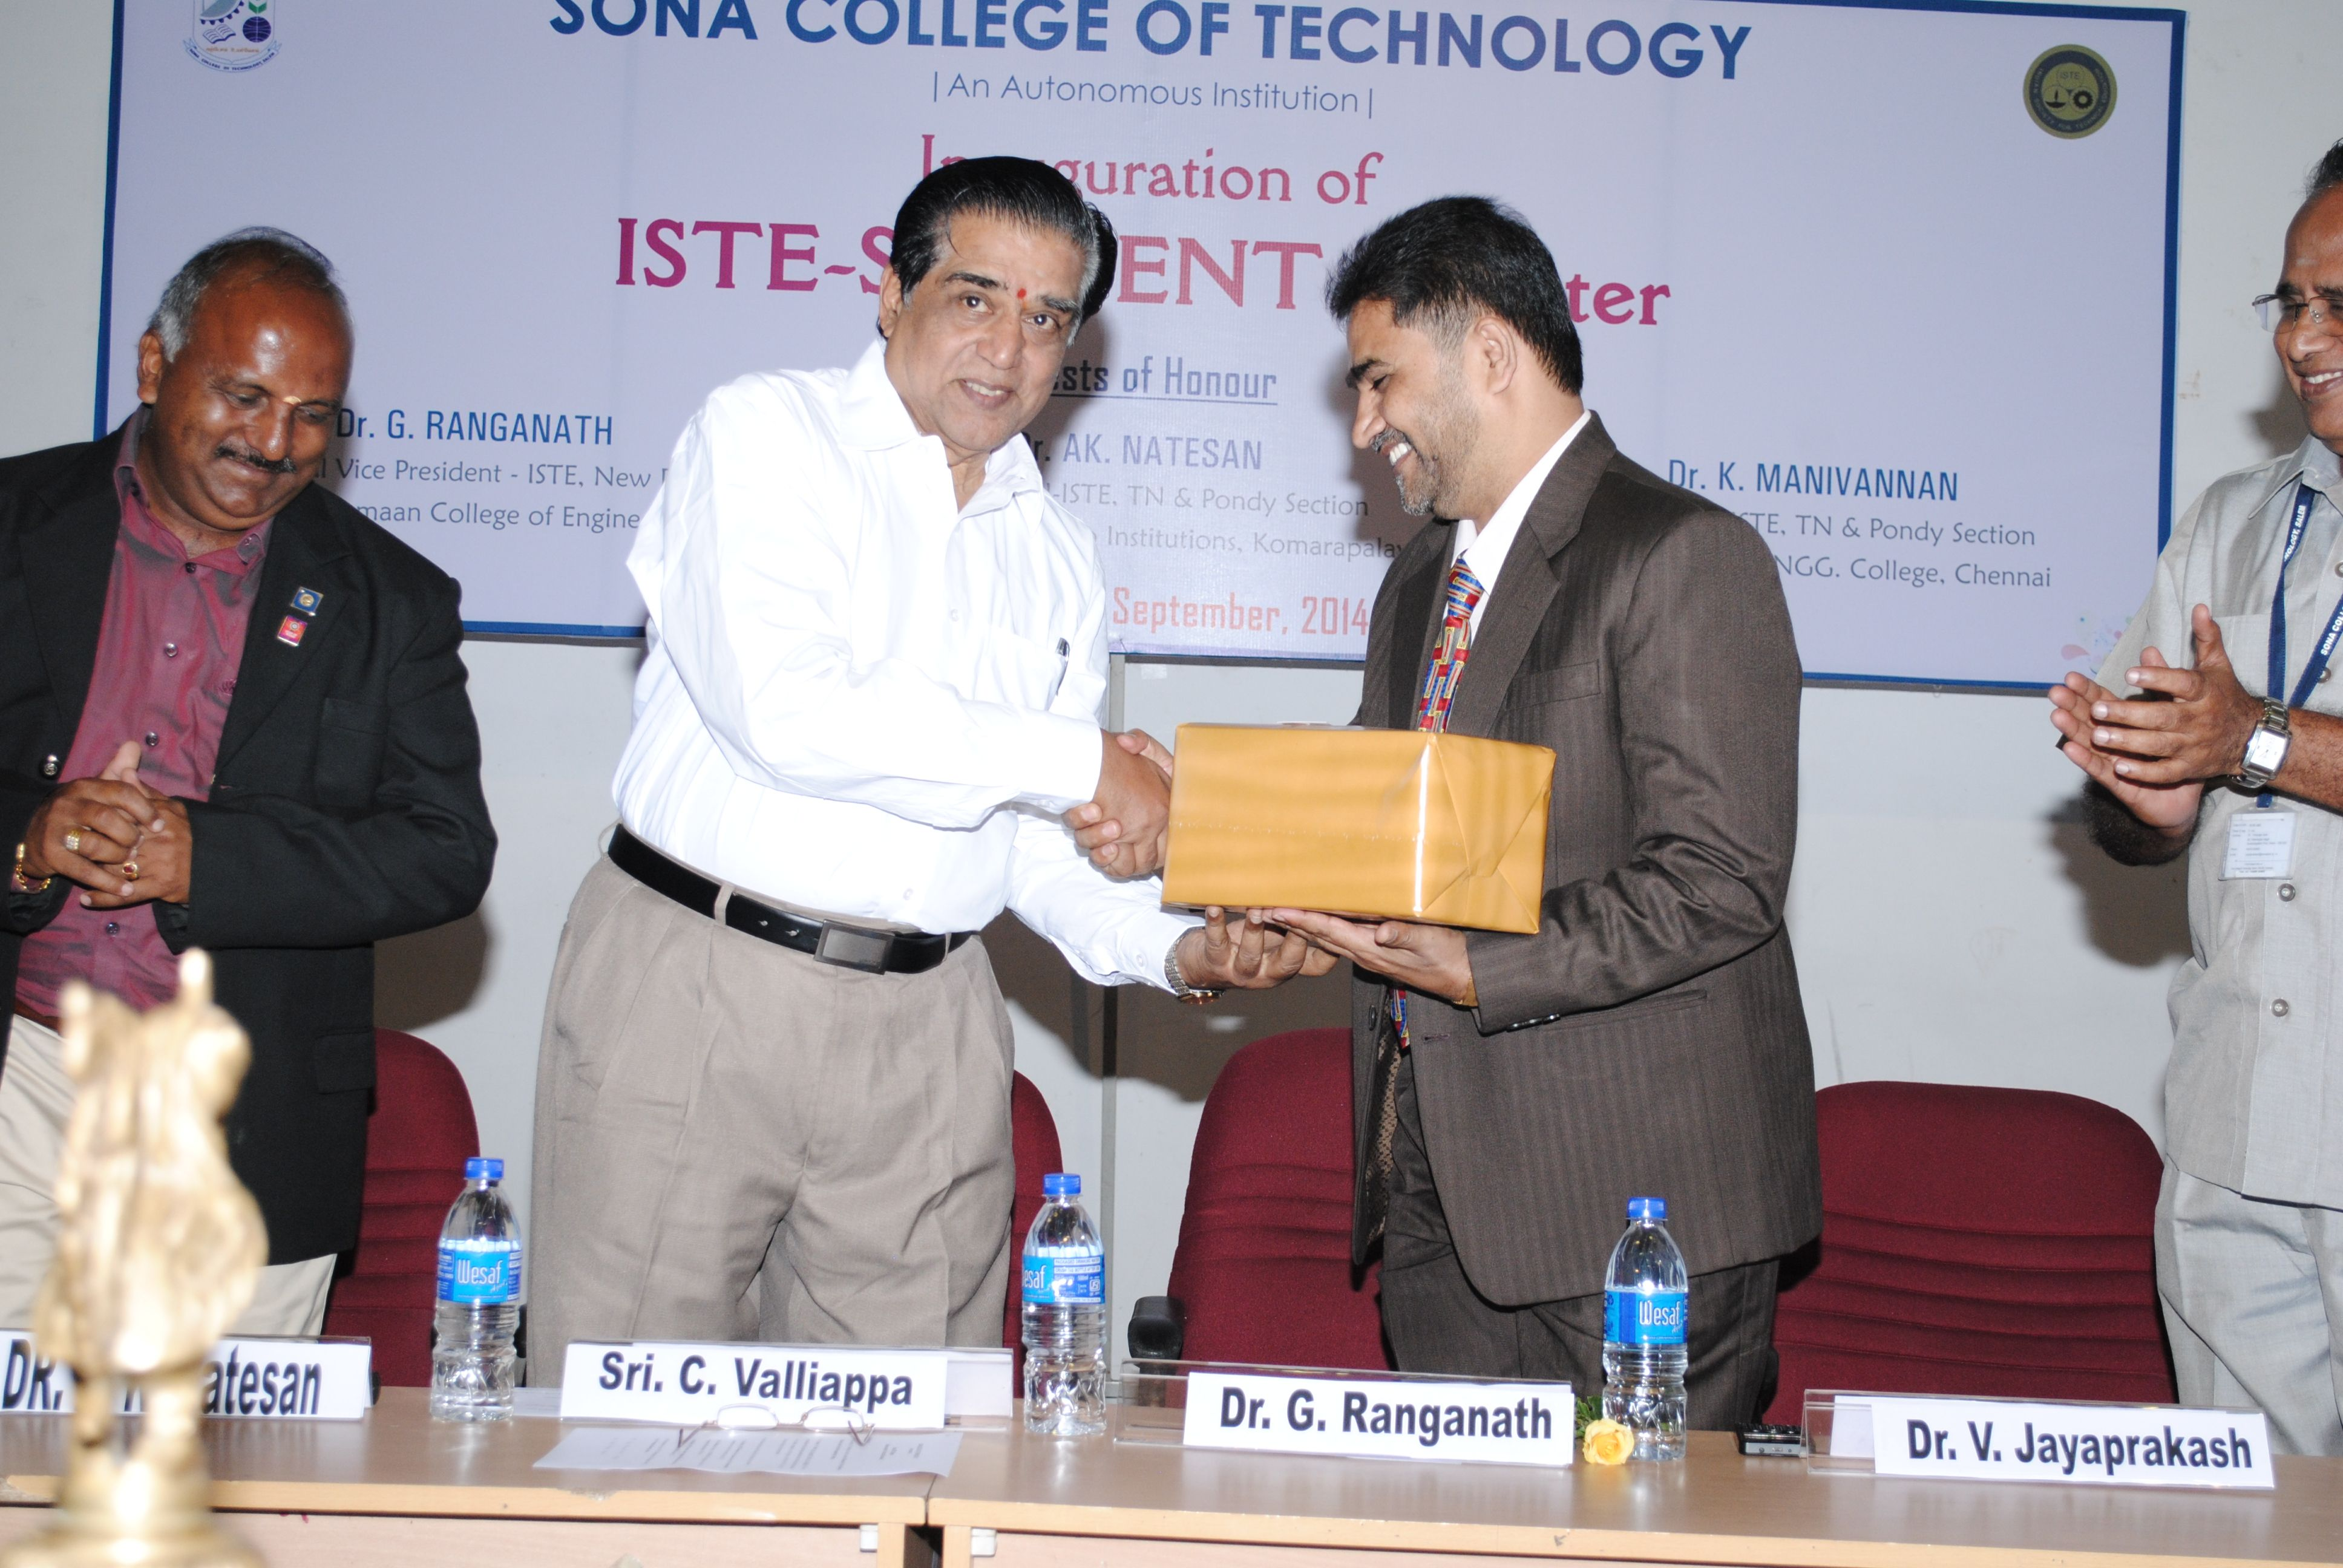 Chairman, Sri C. Valliappa honours the chief guest Dr. G